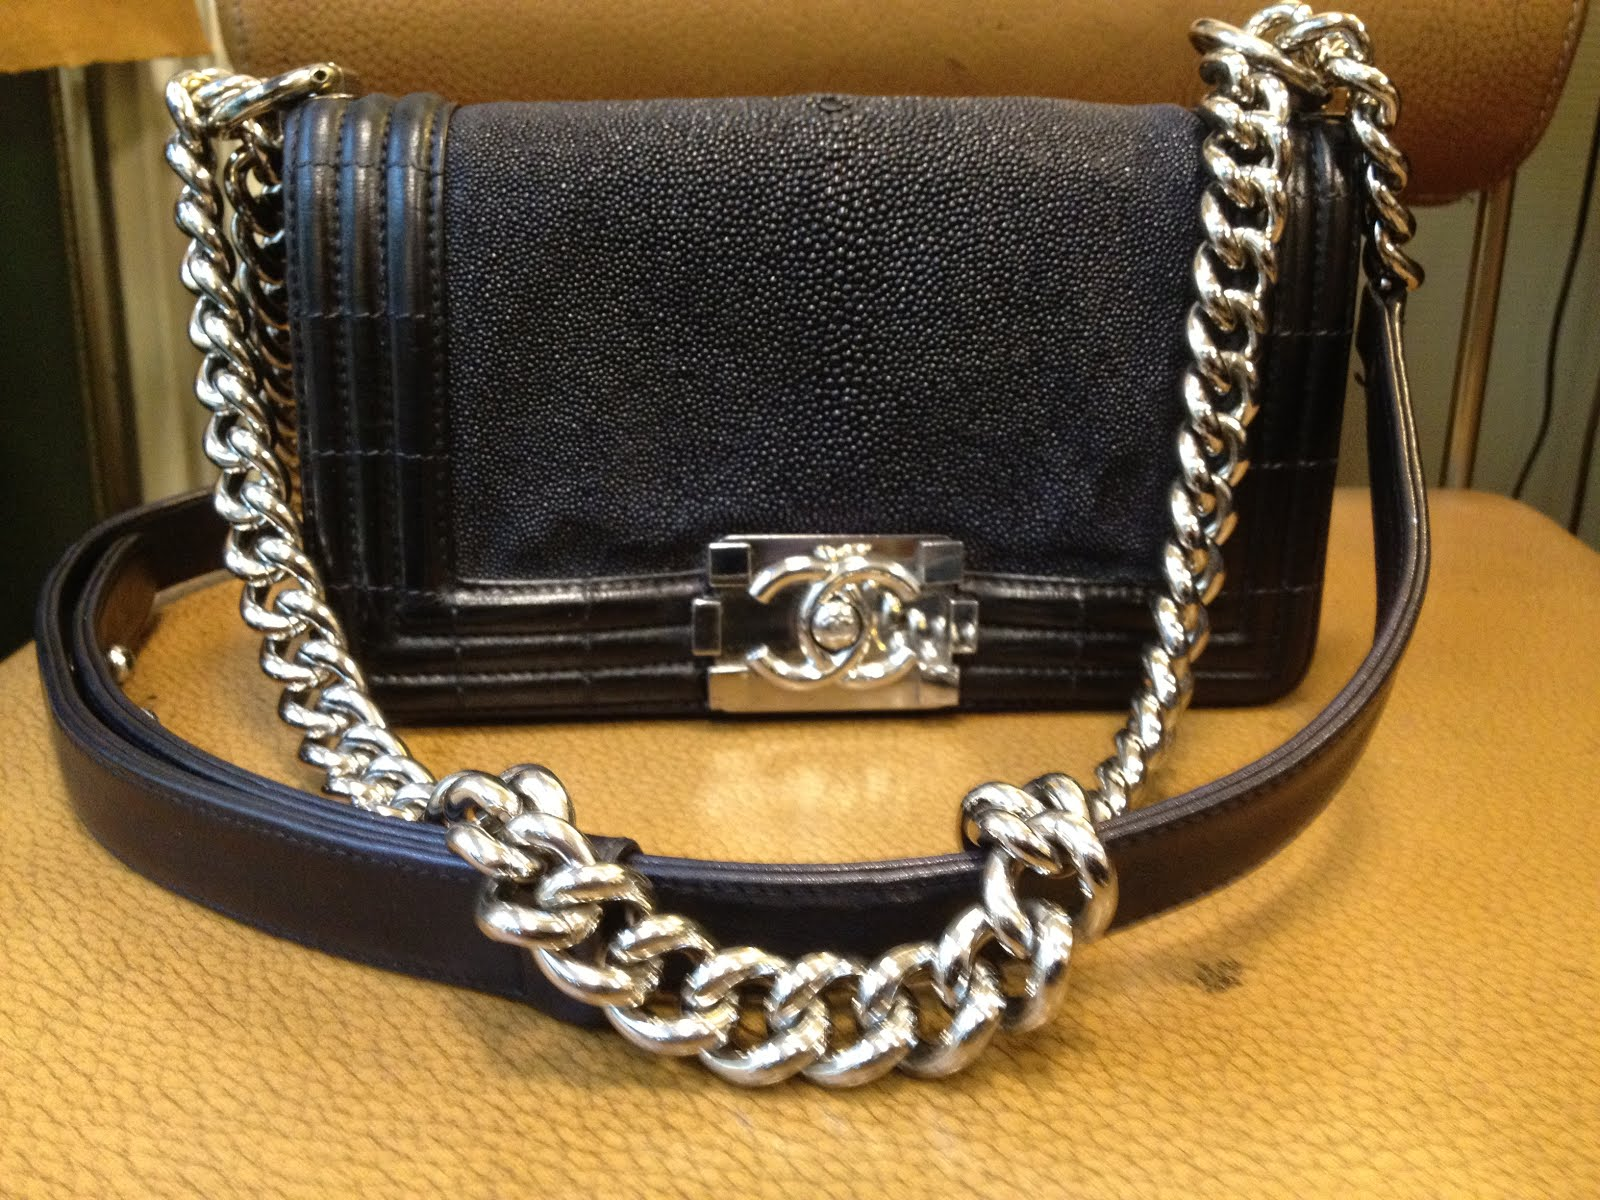 Salon cireur talon rouge paris teinture d 39 un sac chanel for Entretien d un salon en cuir